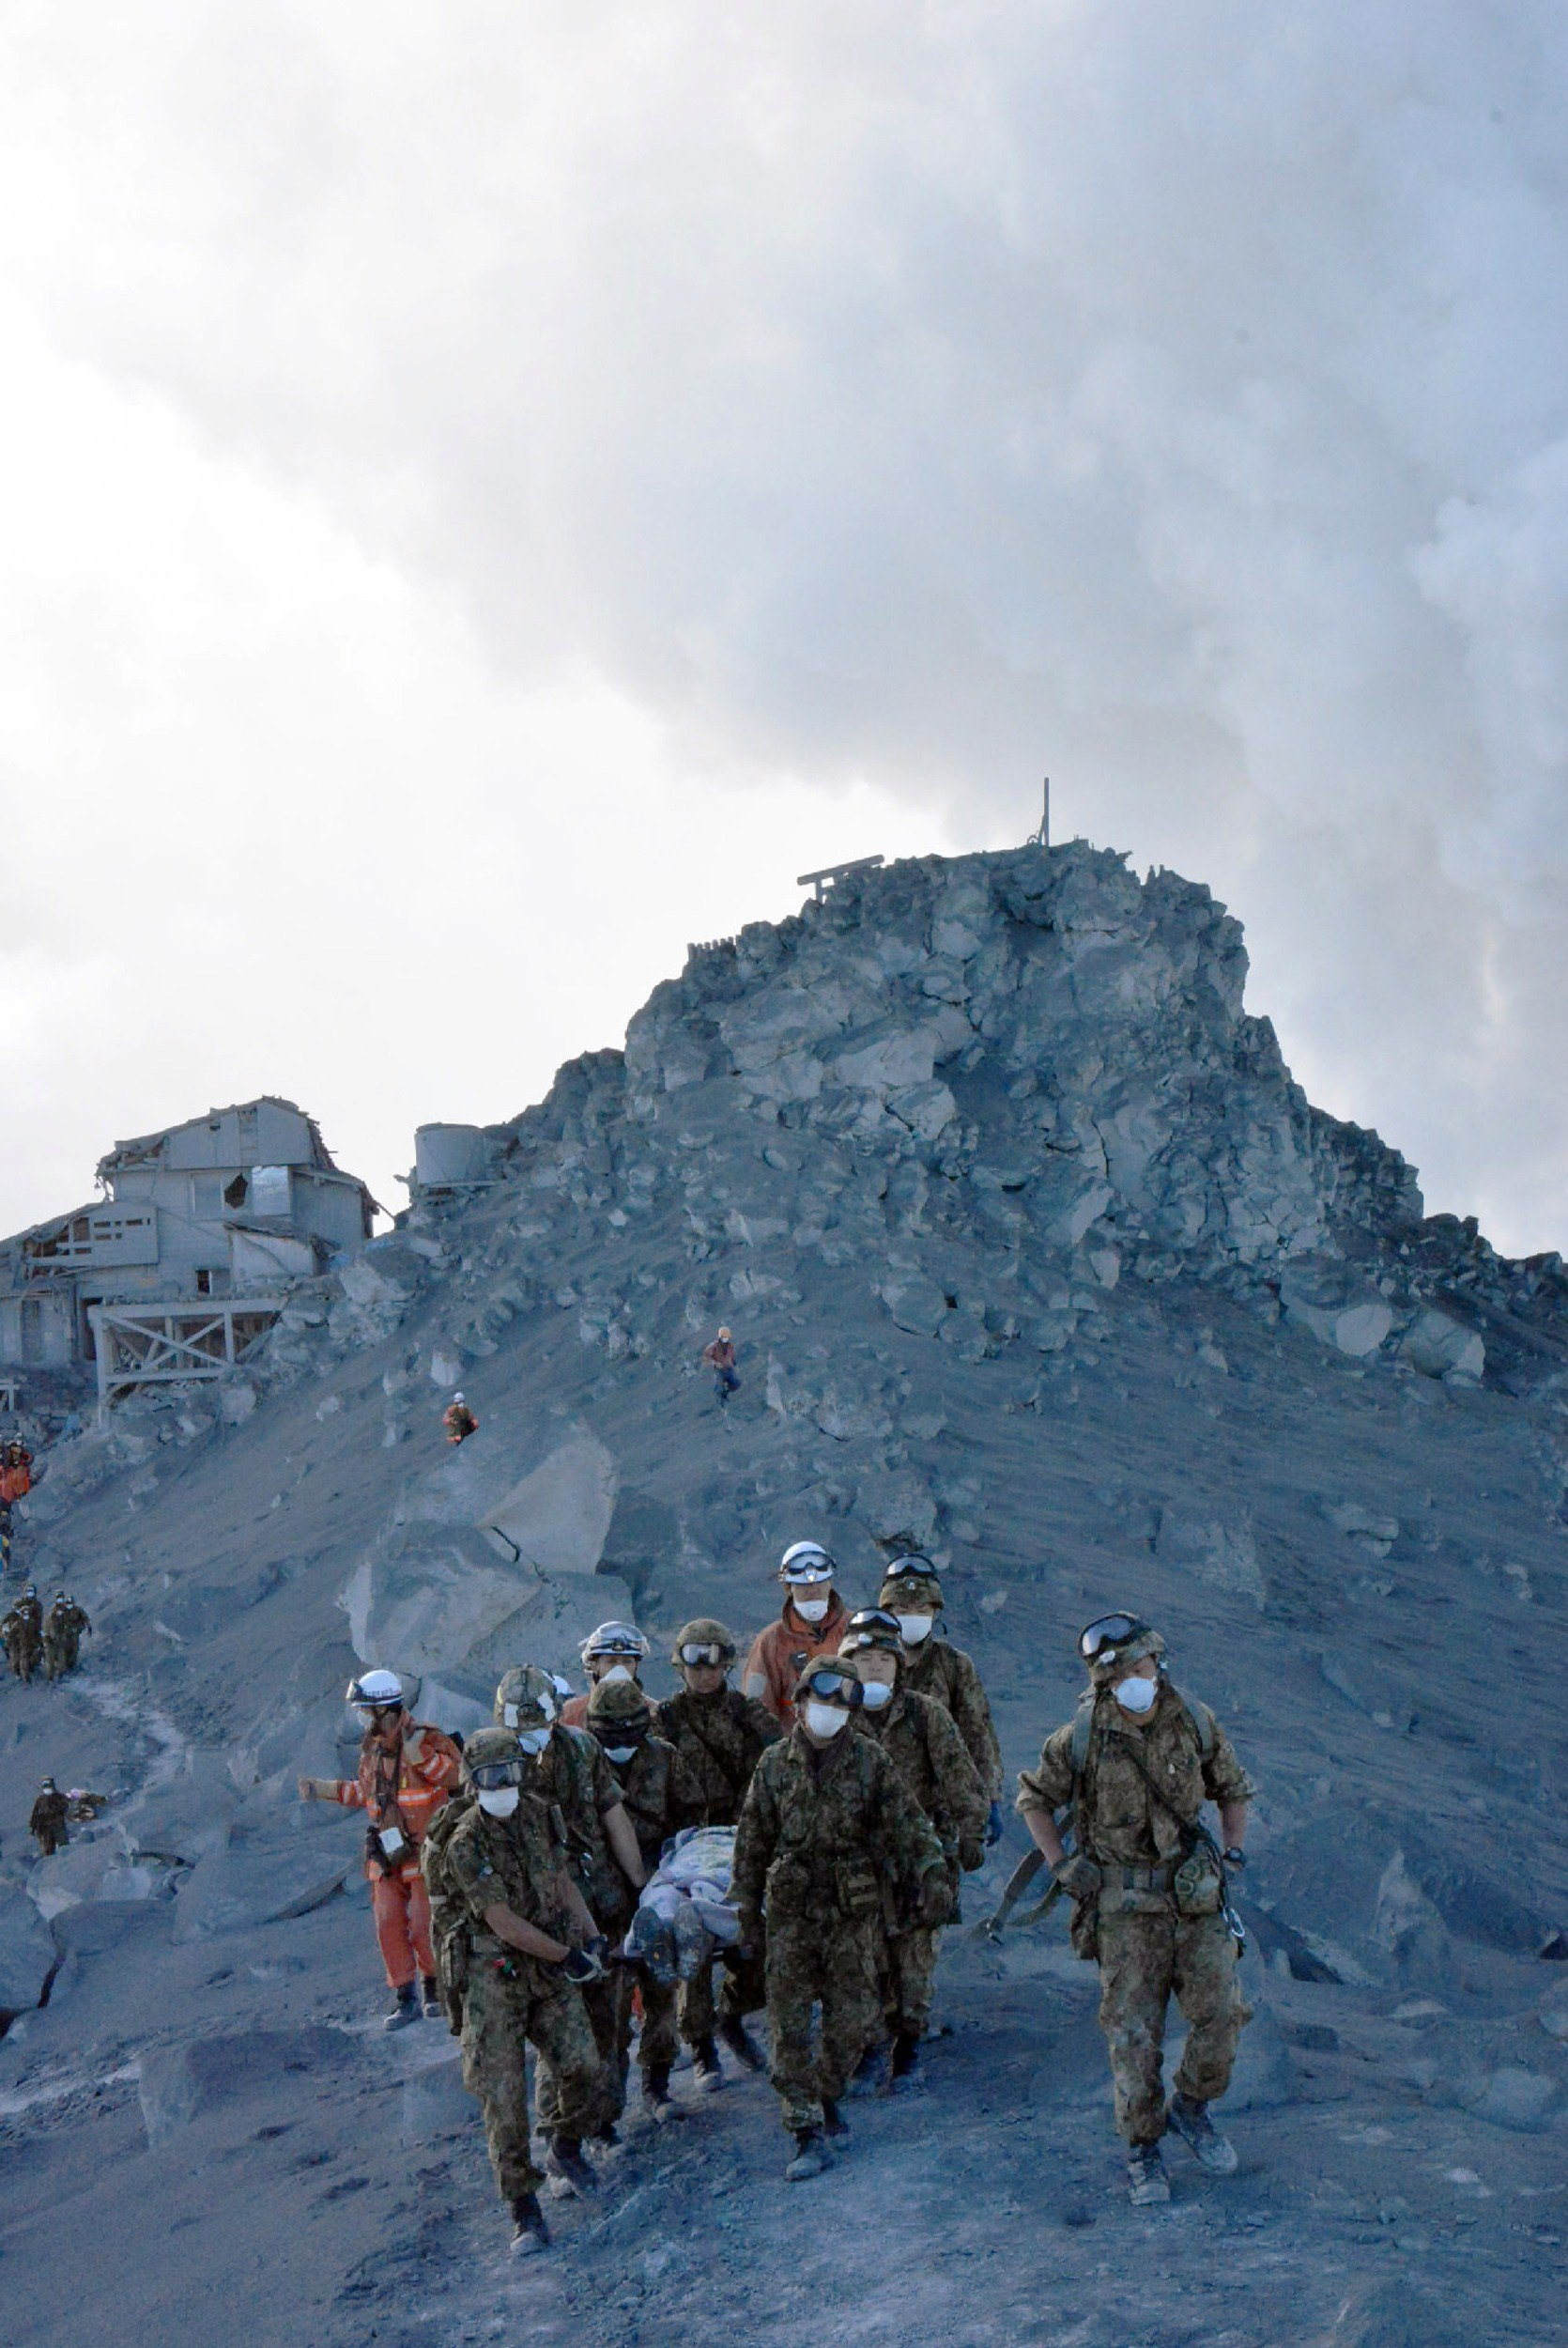 Japan's Self Defense Force soldiers carry an injured climber from the ash covered top of Mount Ontake at Nagano prefecture, one day after Japan's volcano Ontake erupted in central Japan, Sept. 28, 2014.